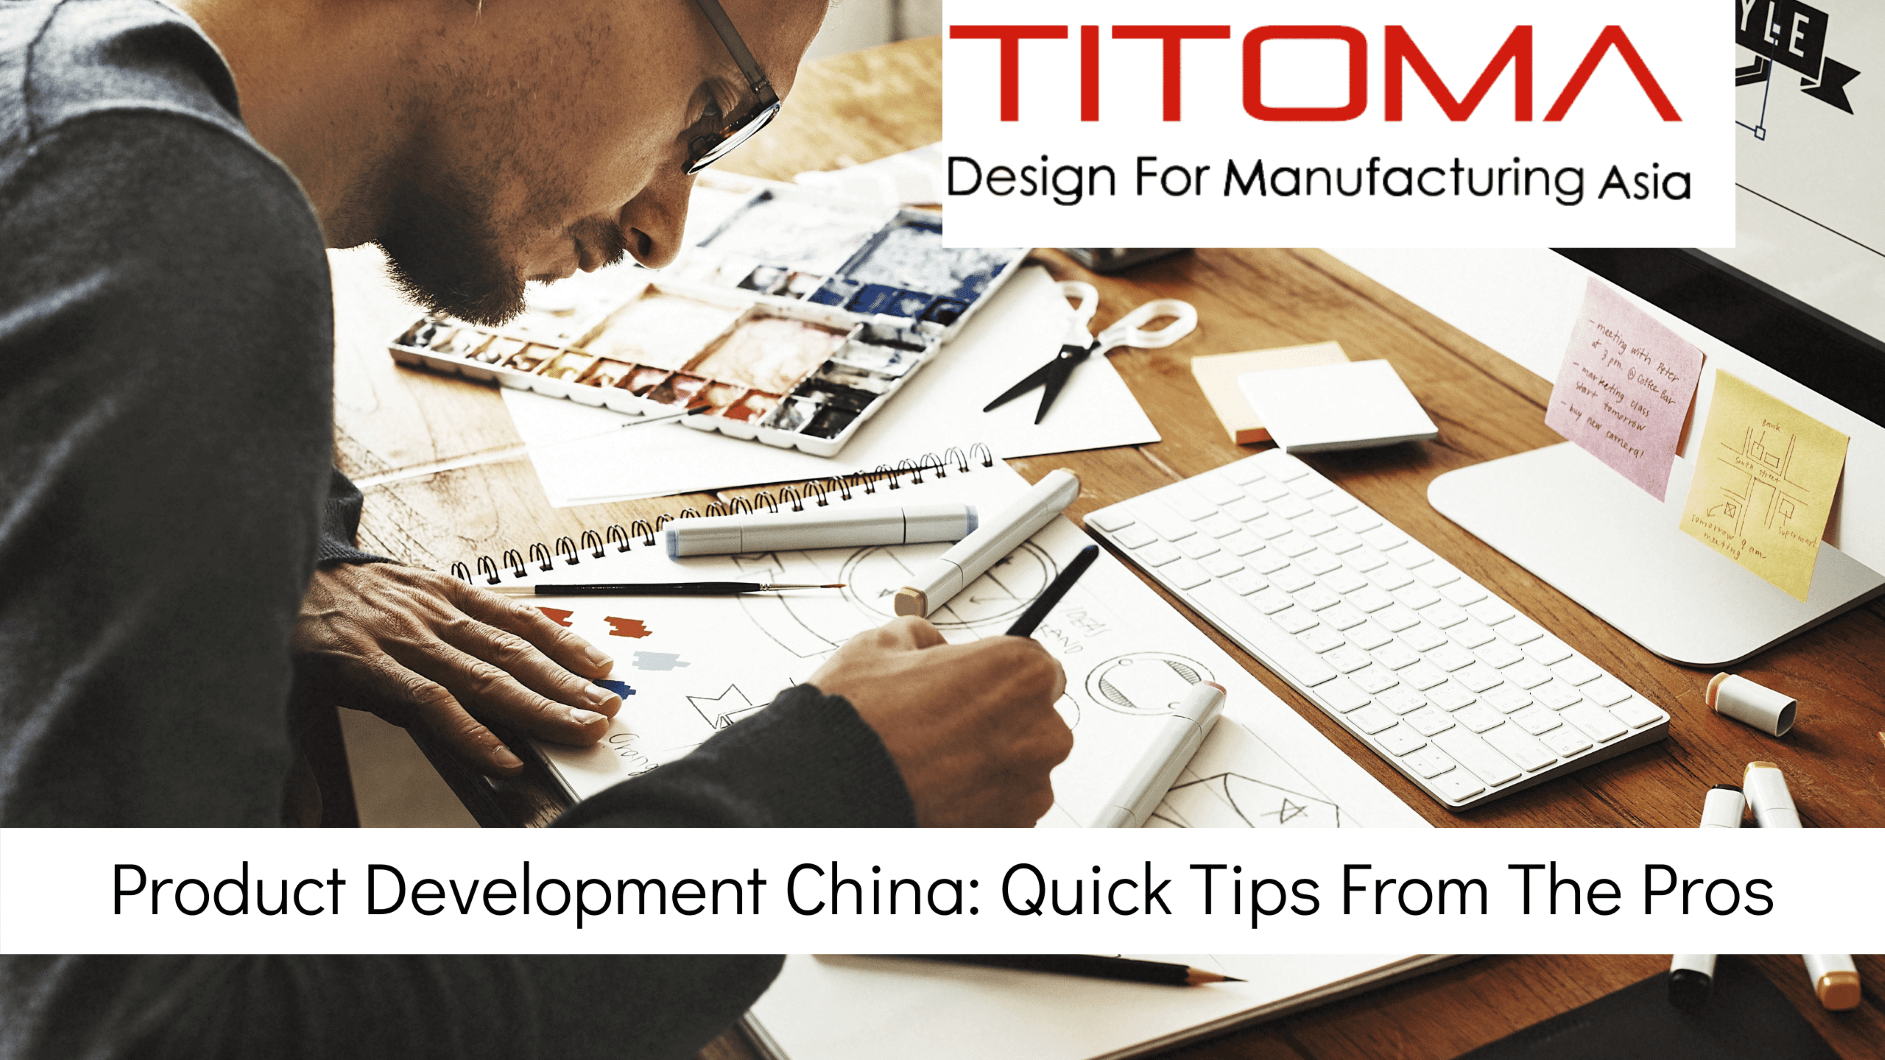 Product Development China Quick Tips